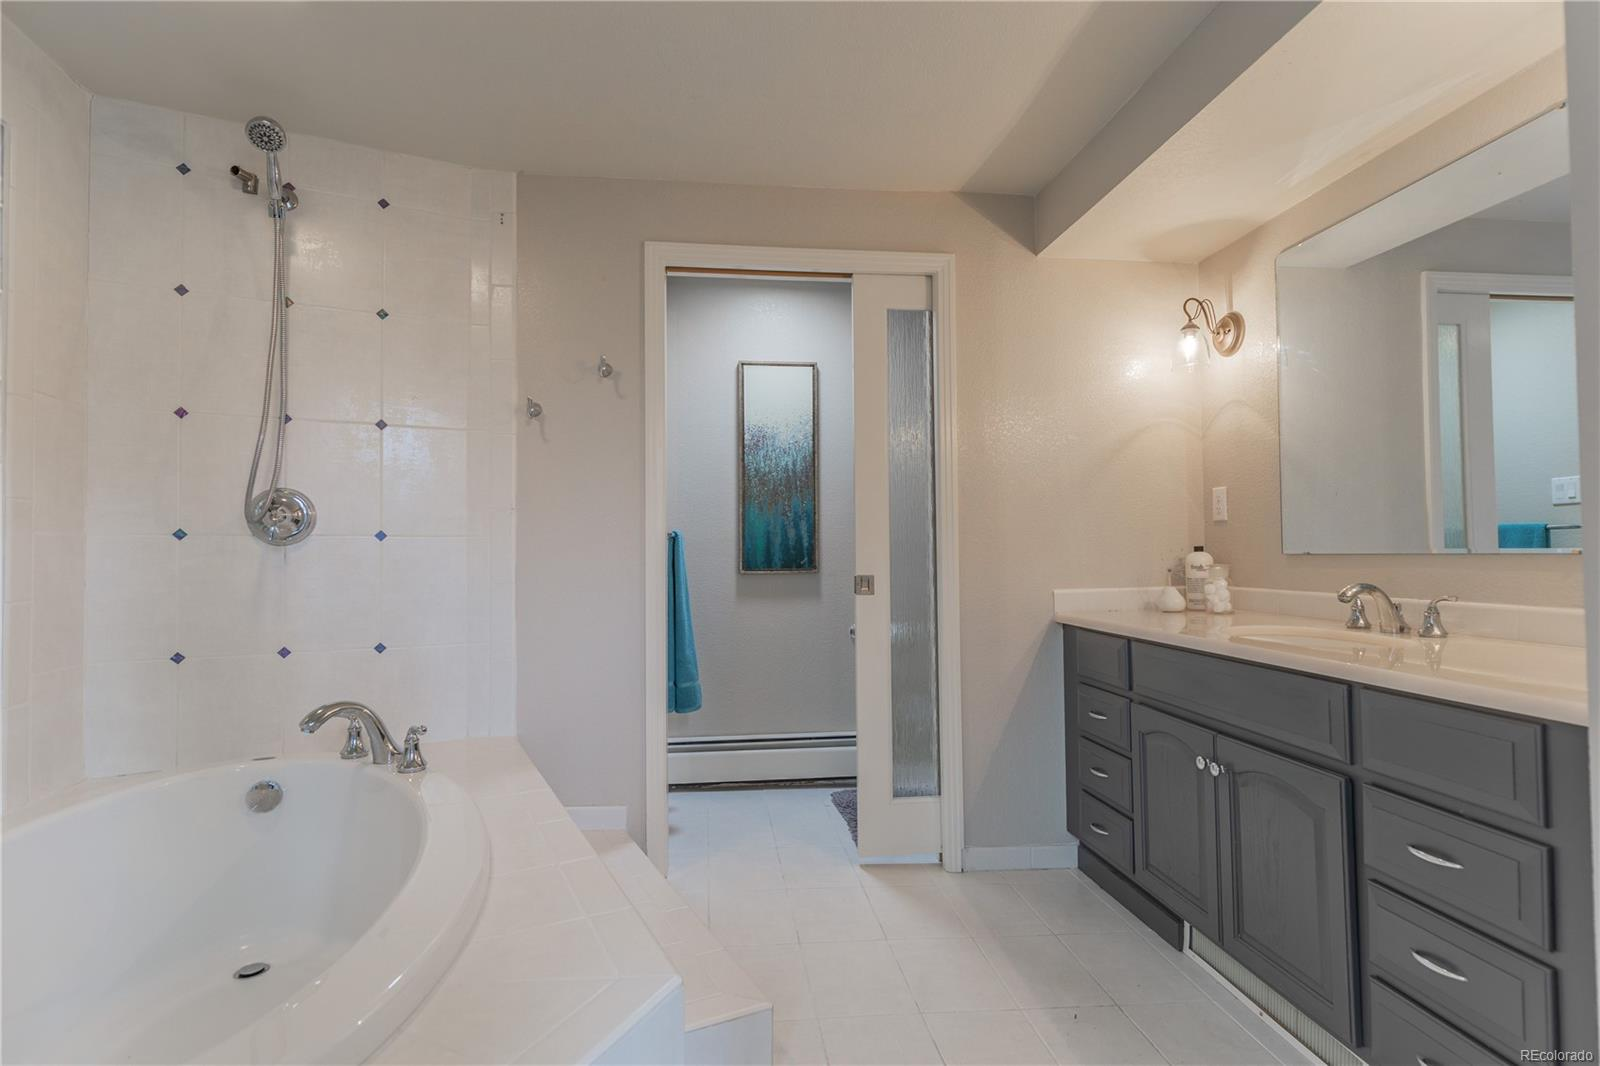 Master bath with over-sized soaking tub and large vanity with separate lavatory.